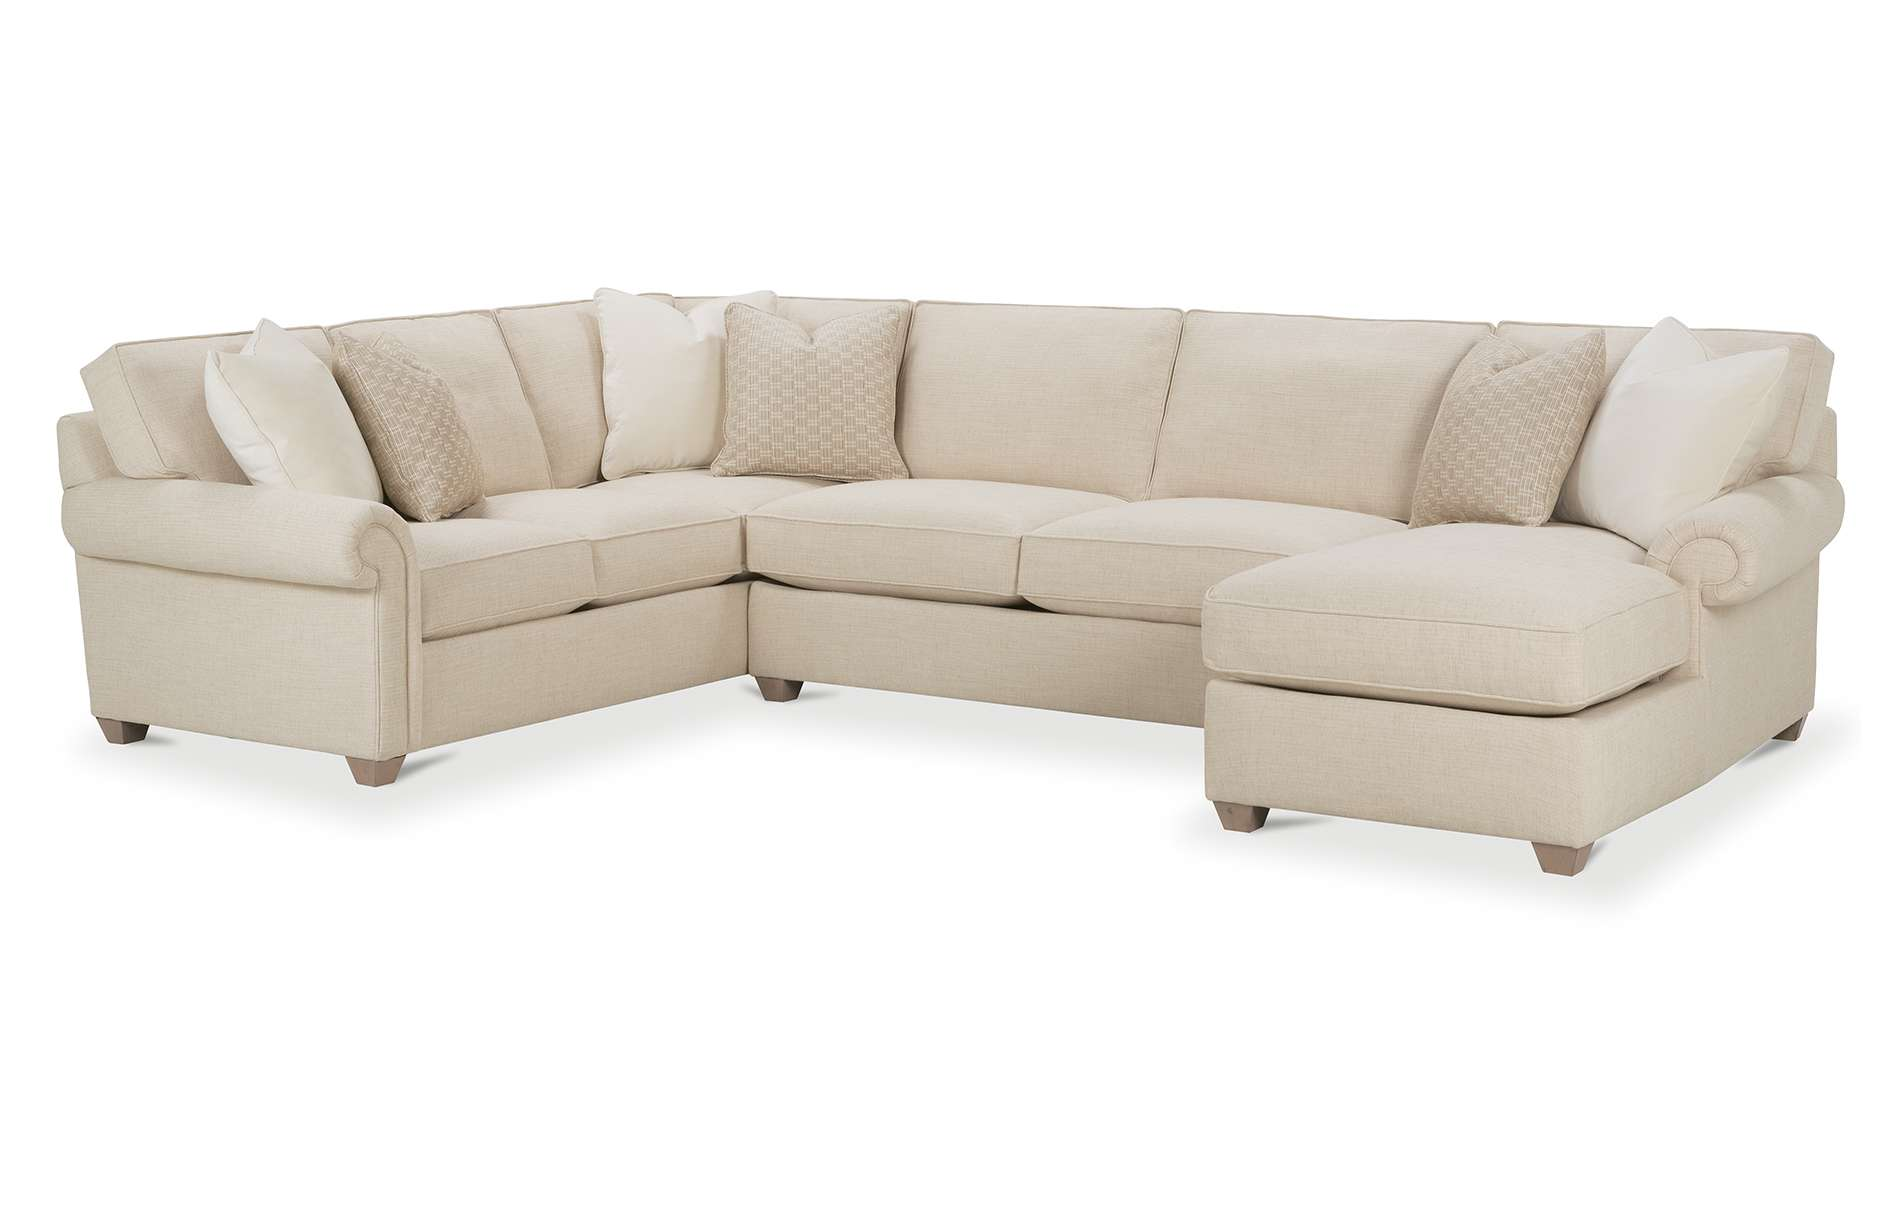 Morgan Sectional Sofa